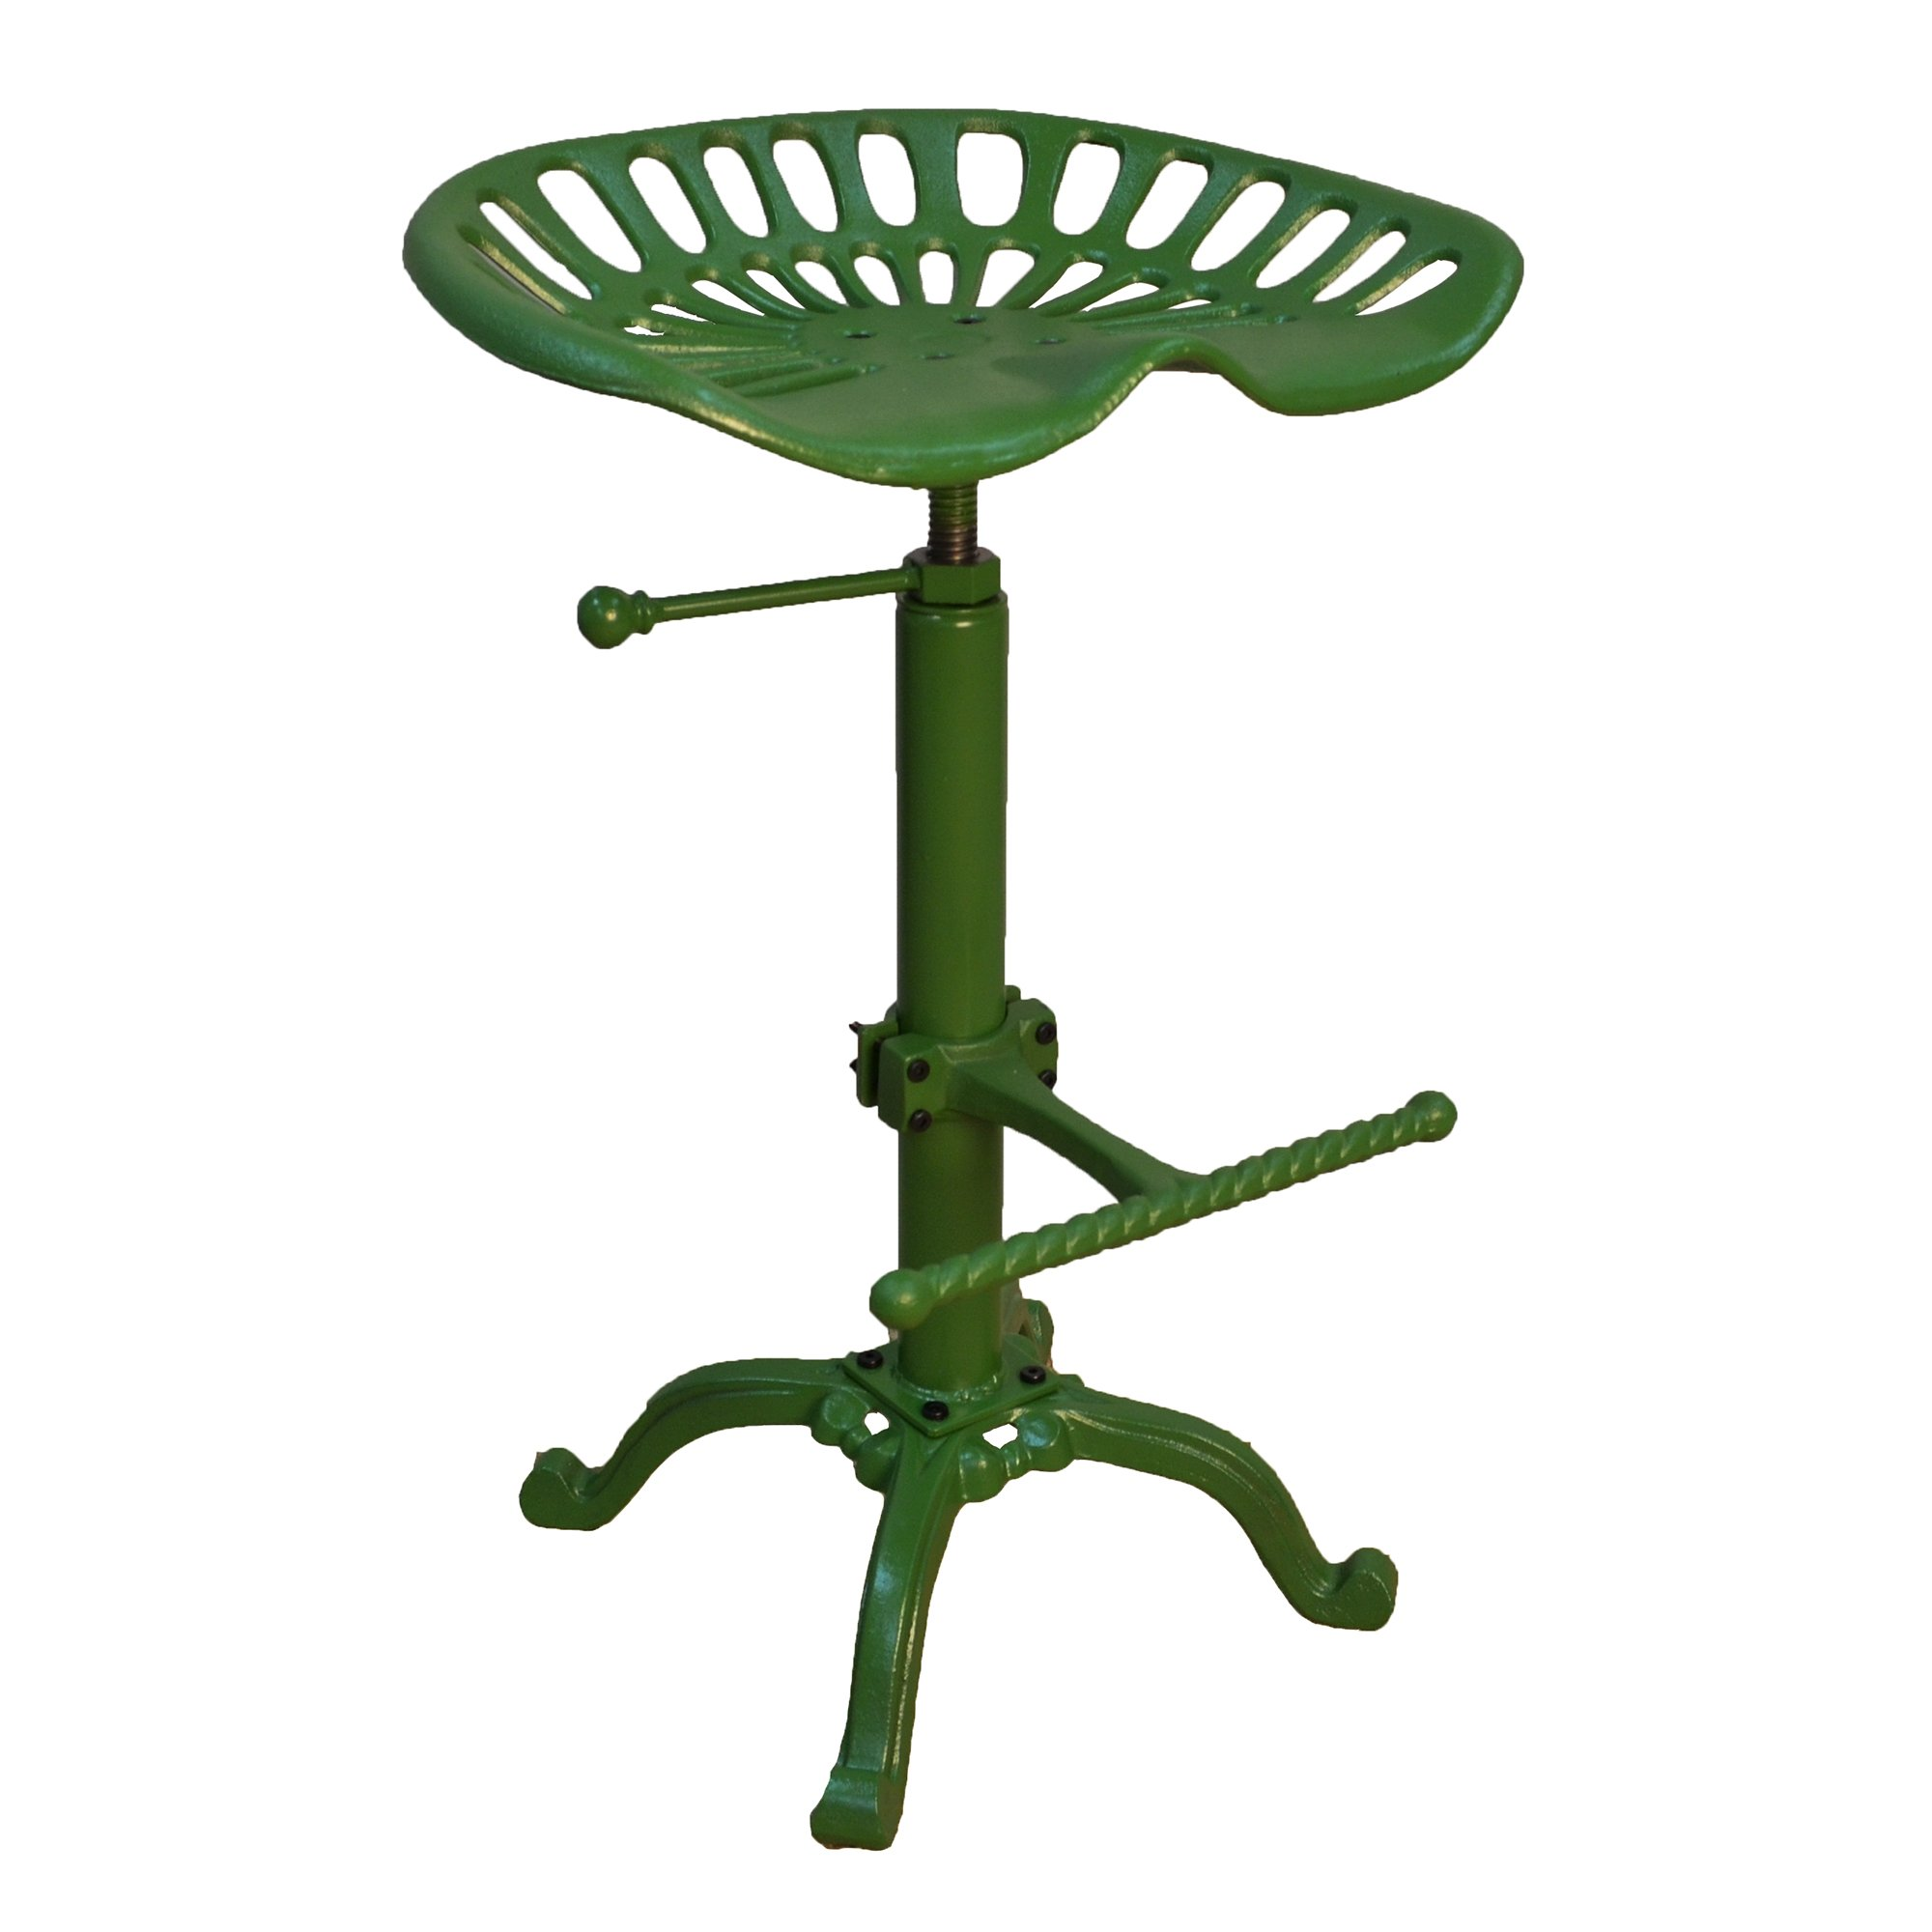 Vintage Tractor Seat Stool Home Furniture